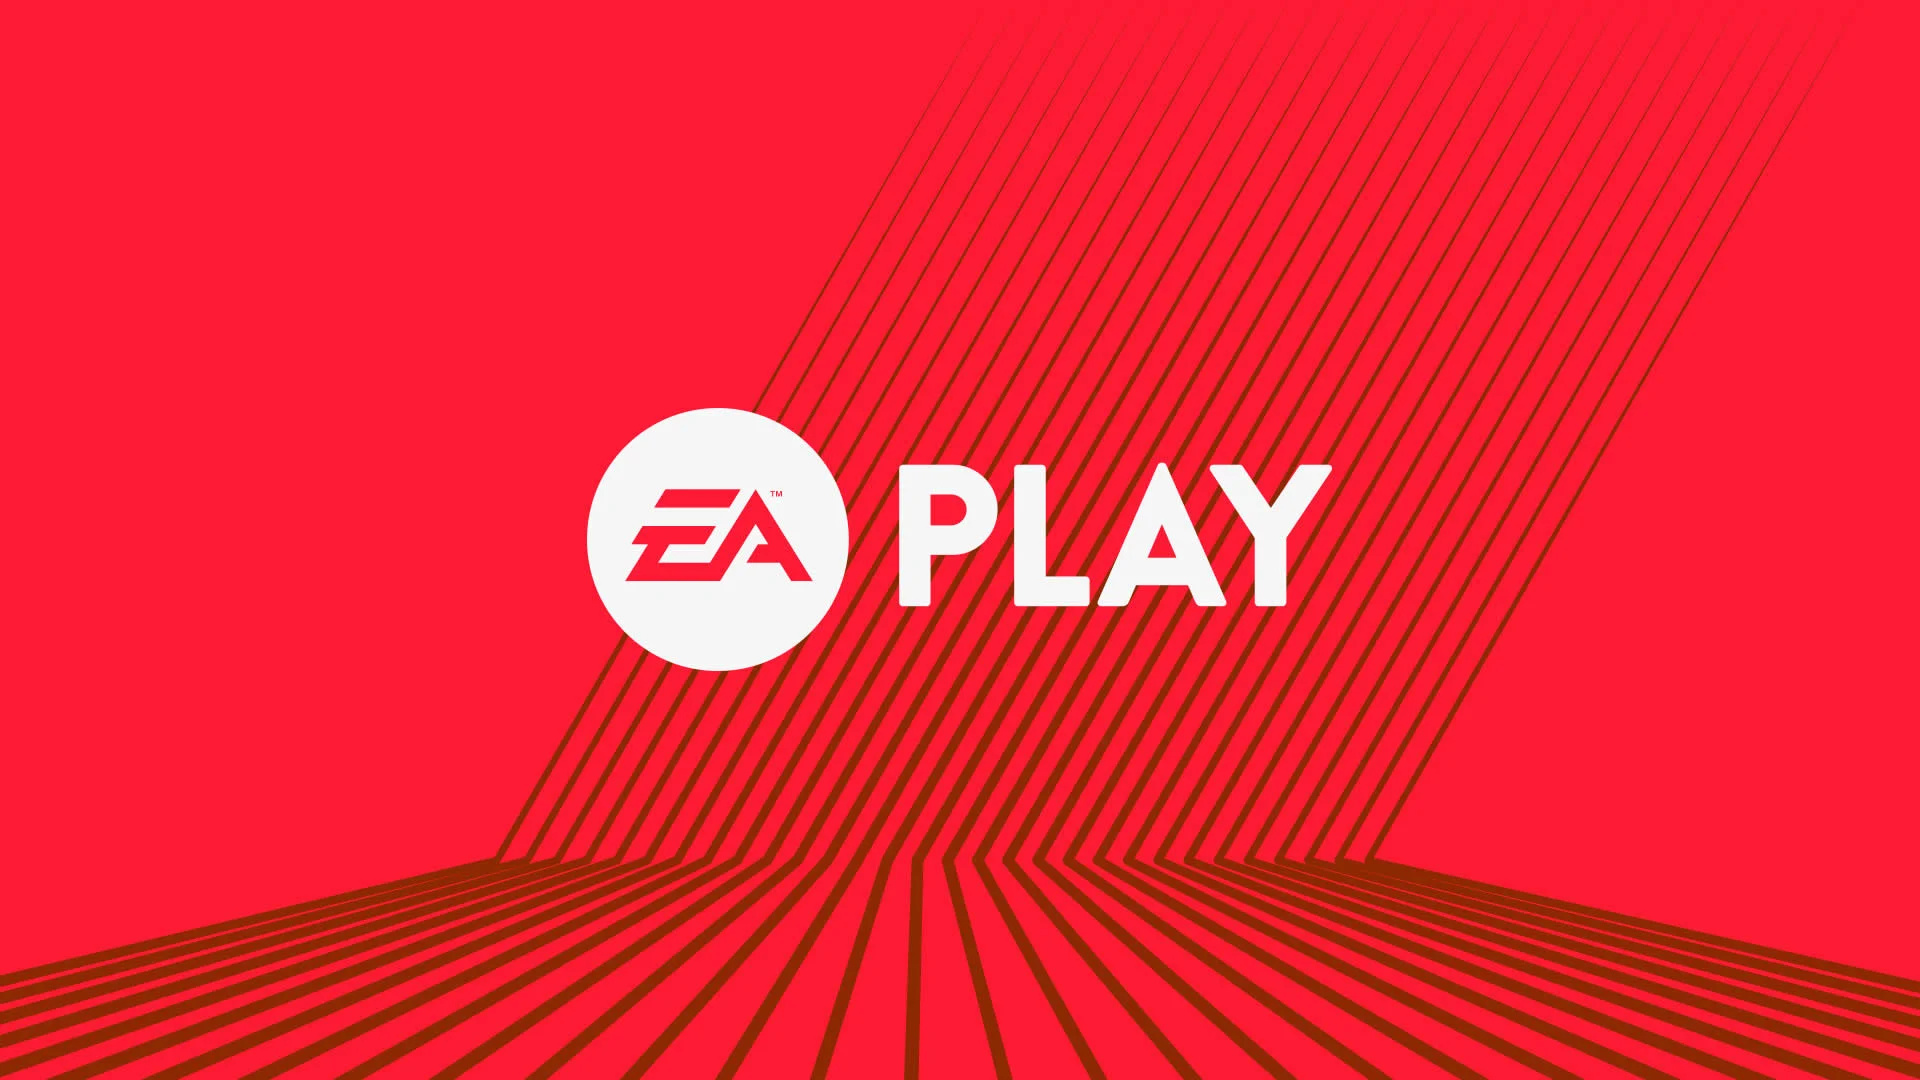 The subscription service was recently renamed from EA Access to EA Play to synchronize with the companies yearly showcase event.